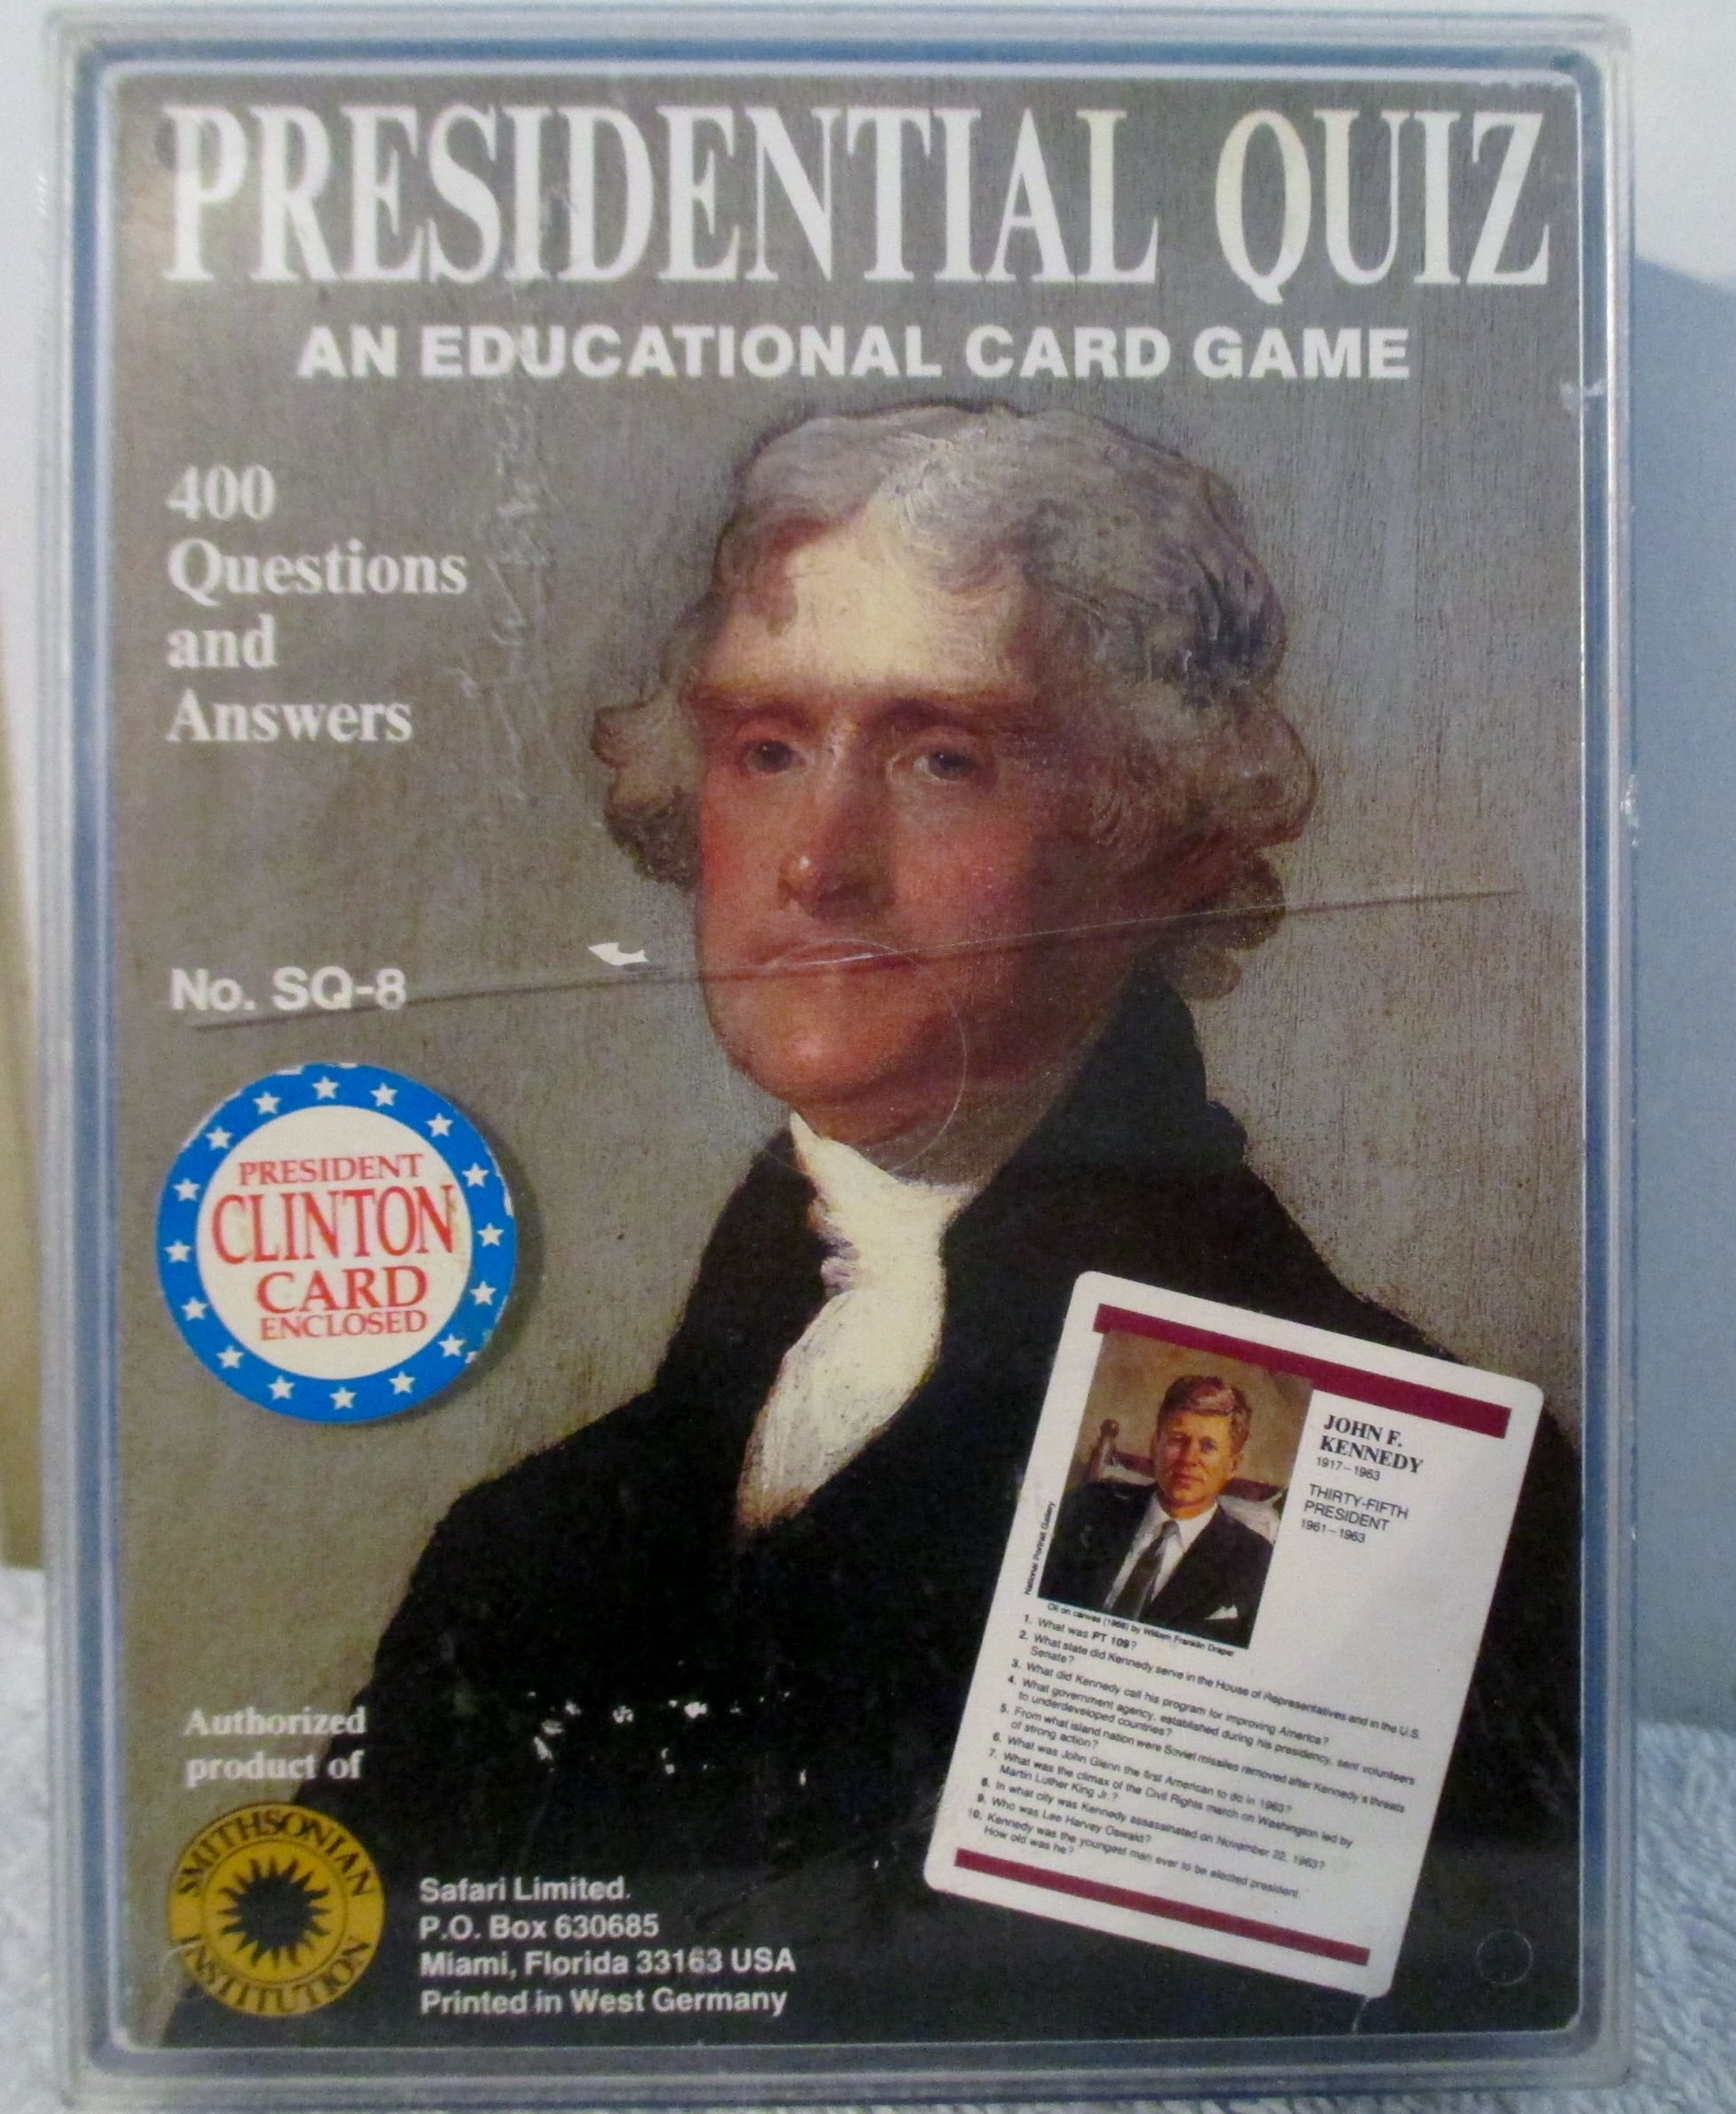 Presidential Quiz , An Educational Card Game , 400 Questions and Answers, # SQ-8 from 1988 Smithsoniam Institution